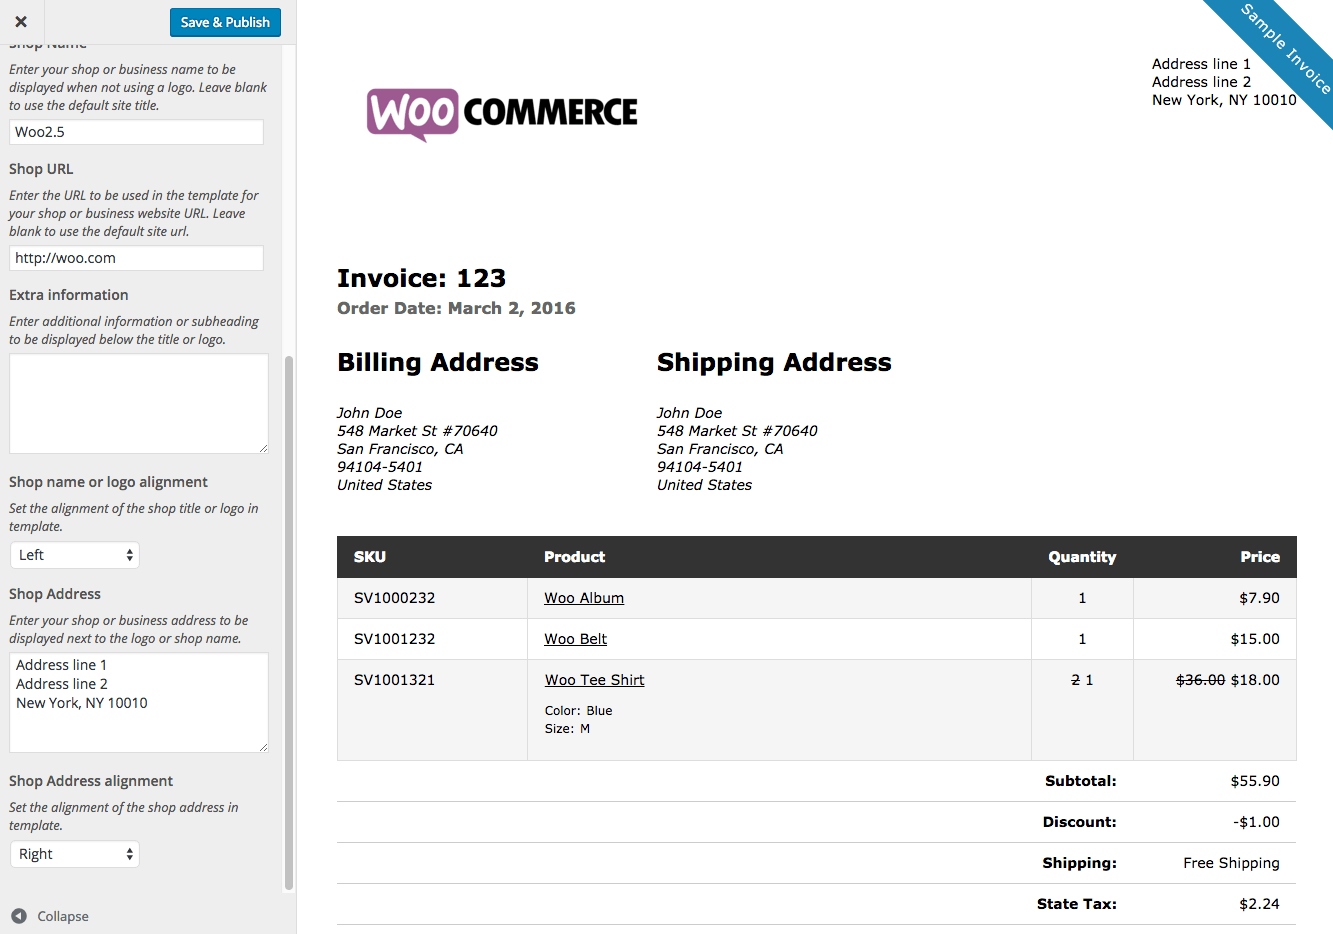 Ultrablogus  Unique Woocommerce Print Invoices Amp Packing Lists  Woocommerce Docs With Extraordinary Woocommerce Print Invoices  Packing Lists Customizer With Nice Customised Receipt Books Also Rental Receipts Template In Addition Hotel Bill Receipt And Tenancy Deposit Receipt As Well As Neat Receipts Customer Service Additionally Receipt Copy Sample From Docswoocommercecom With Ultrablogus  Extraordinary Woocommerce Print Invoices Amp Packing Lists  Woocommerce Docs With Nice Woocommerce Print Invoices  Packing Lists Customizer And Unique Customised Receipt Books Also Rental Receipts Template In Addition Hotel Bill Receipt From Docswoocommercecom